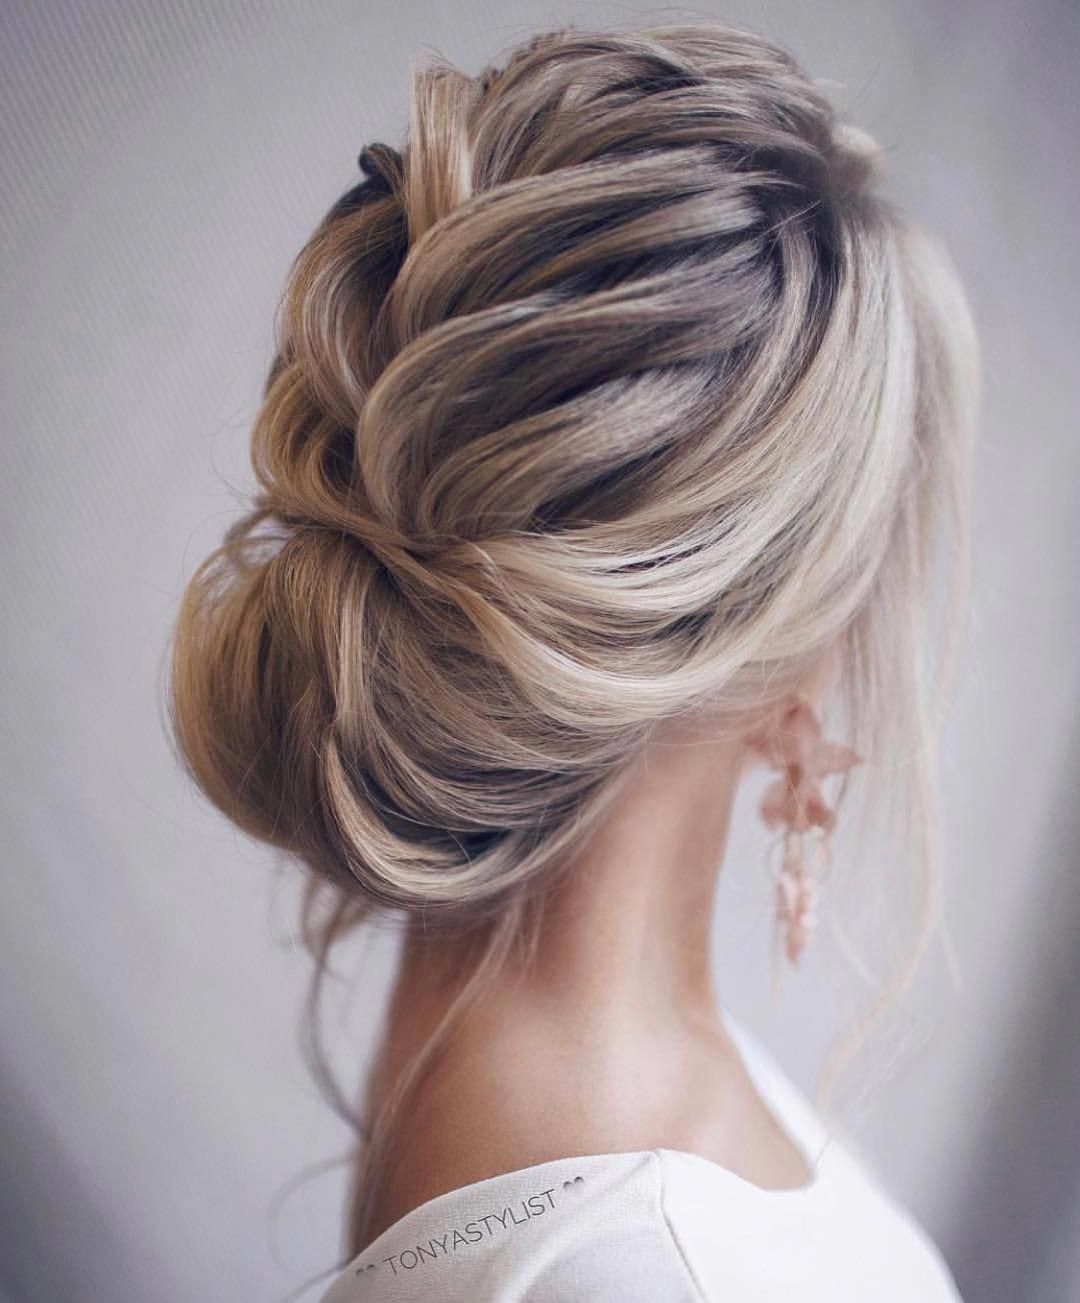 32 Most Romantic Updos For Long Hair Elegant Formal Hair Long Prom Updo Wedding Longhairstyles Hair Styles Long Hair Styles Elegant Wedding Hair